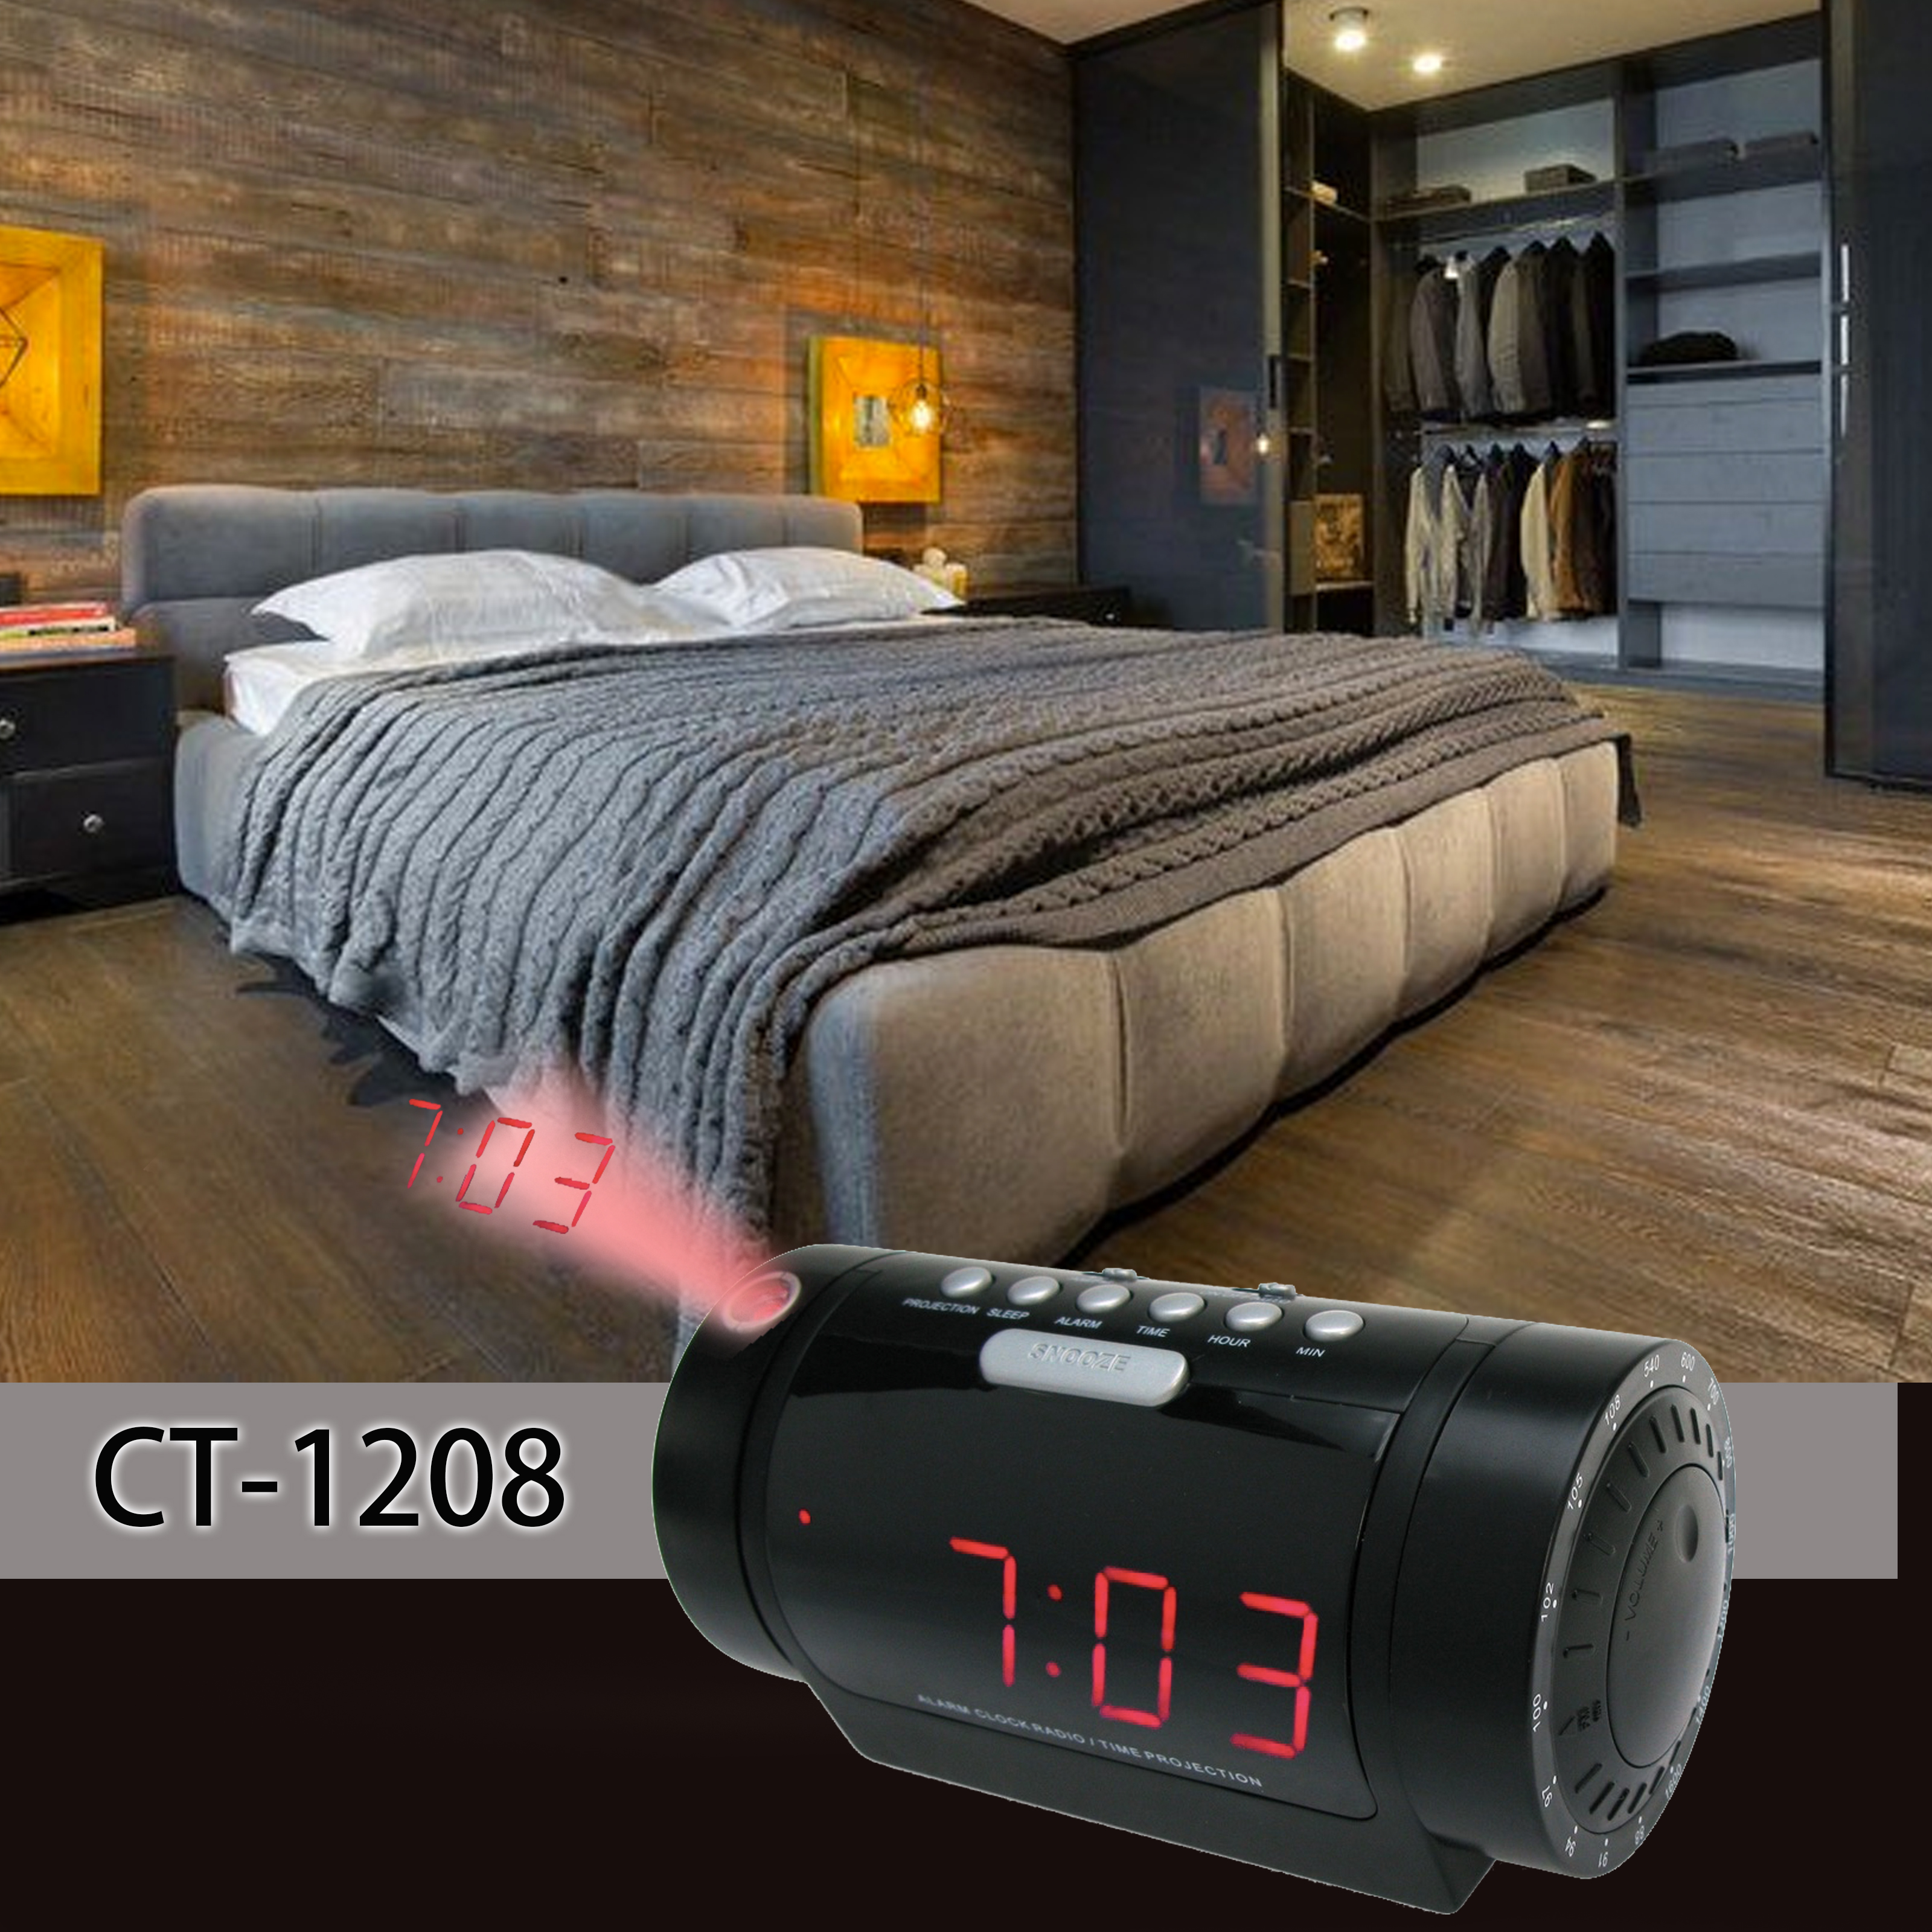 CT-1208 bedroom .jpg